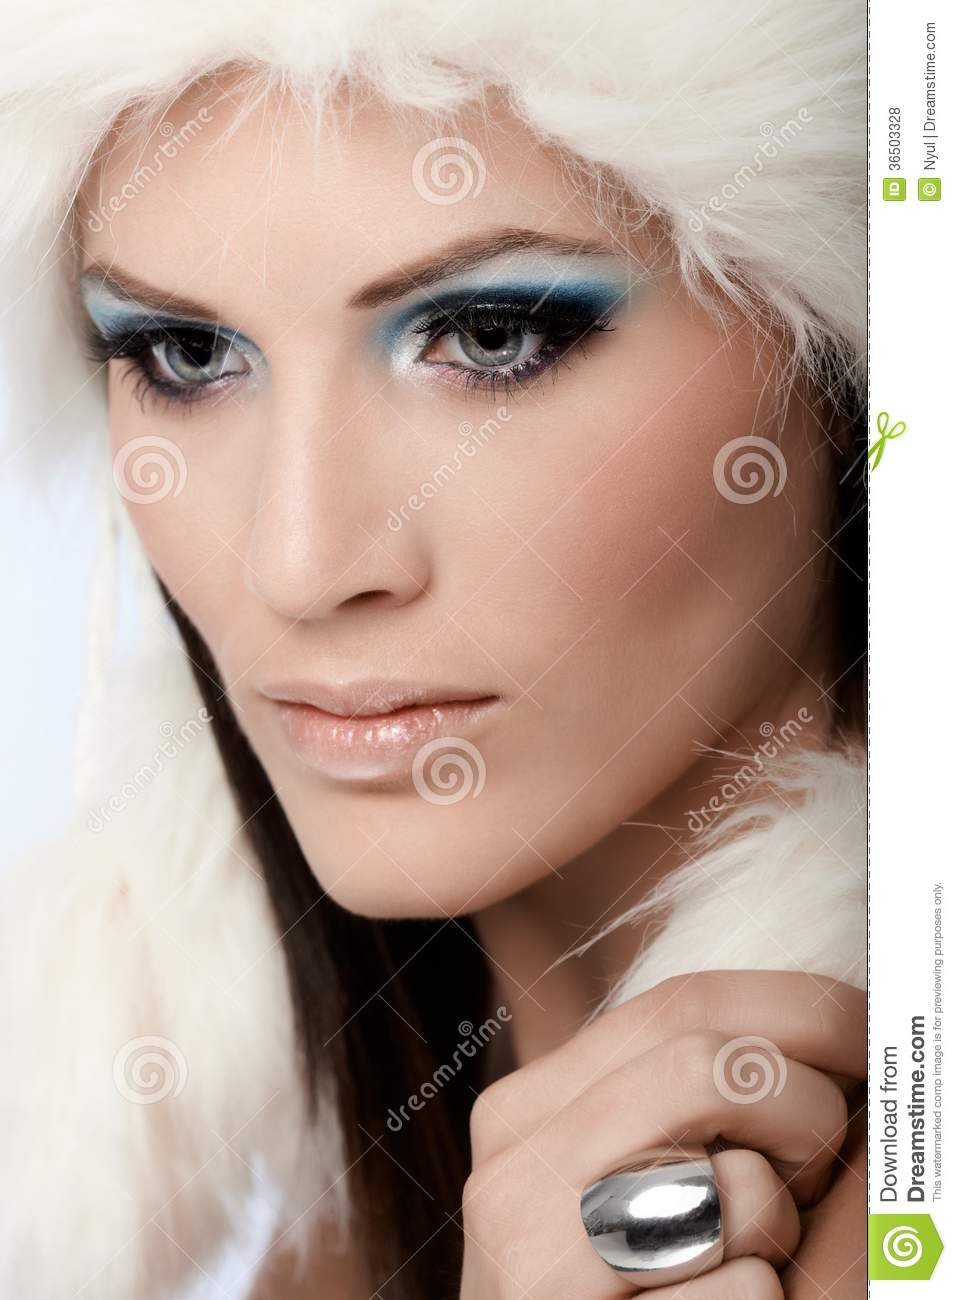 Glamorous Woman With Professional Makeup Stock Photo